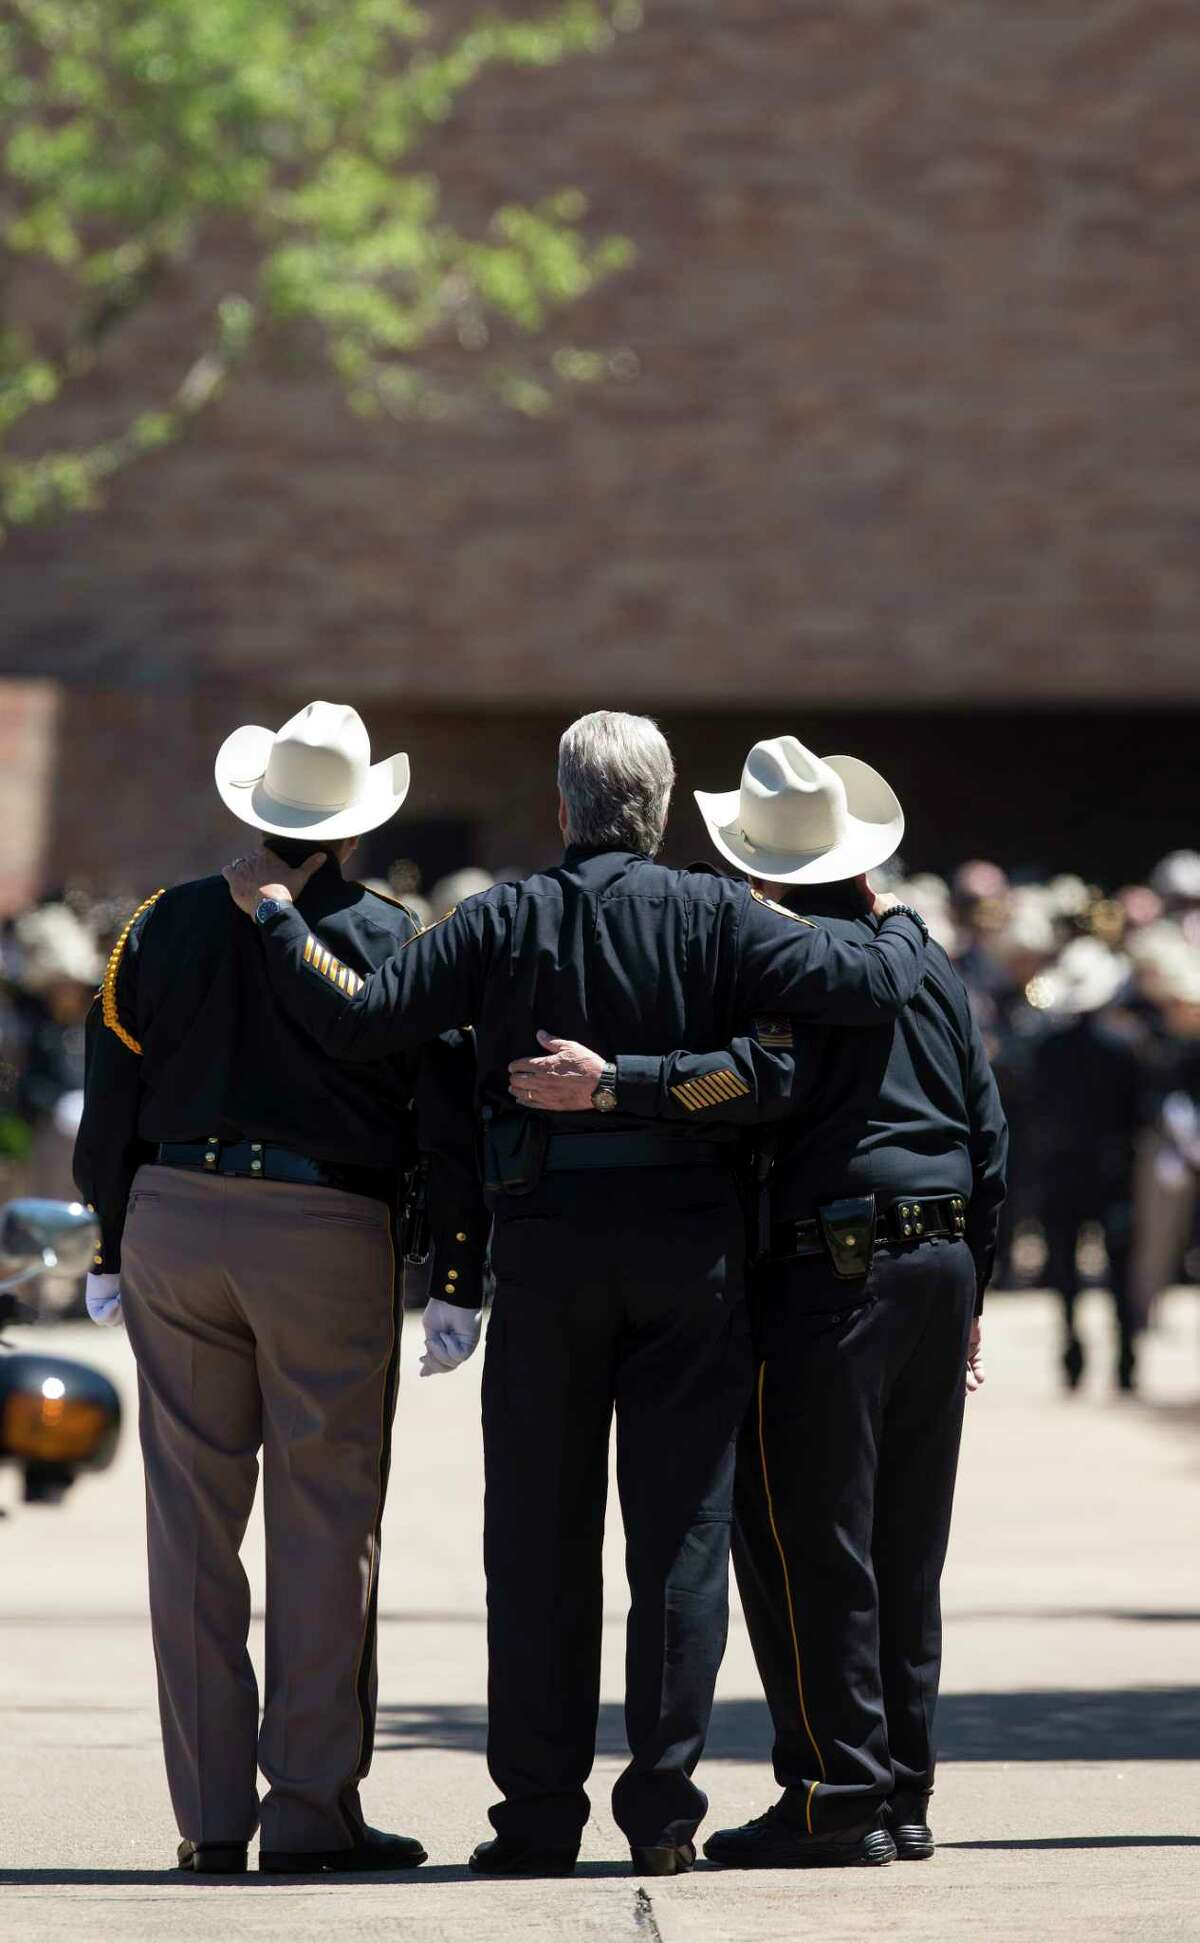 Law enforcement officers embrace during the funeral of Harris County Precinct 3 Assistant Chief Deputy Clinton Greenwood at Second Baptist Church Thursday, April 6, 2017, in Houston.